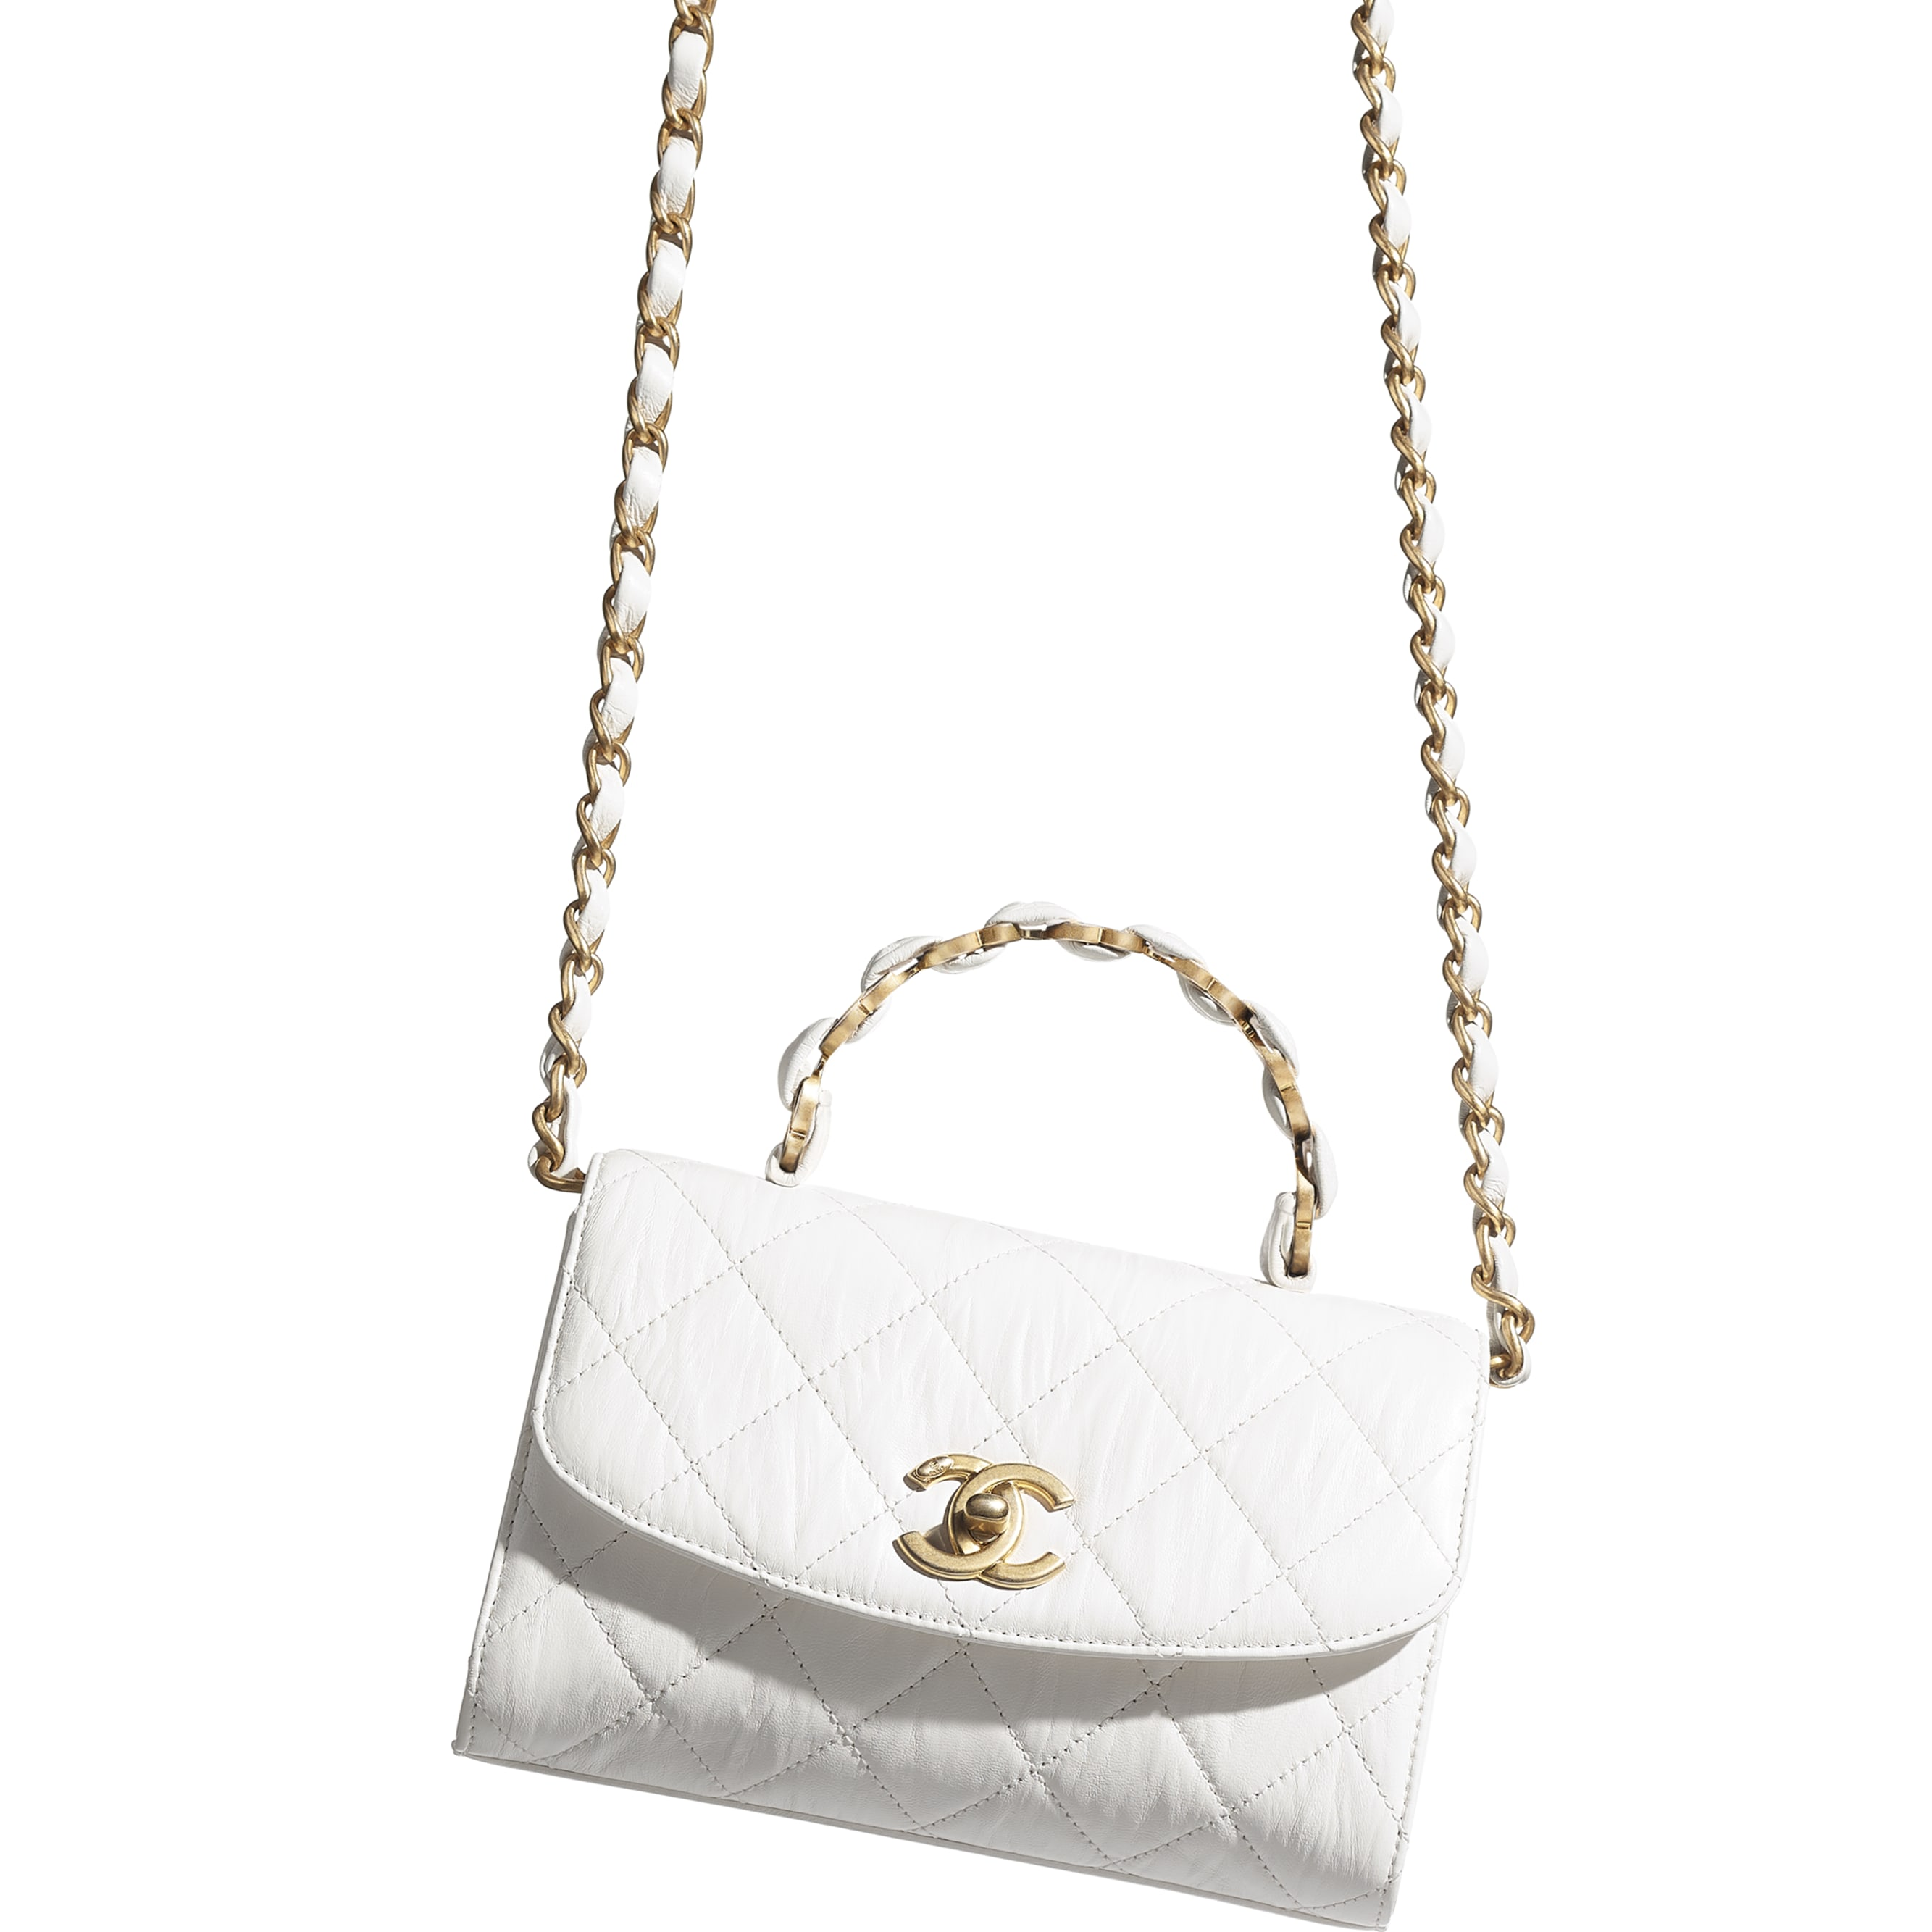 Mini Flap Bag with Top Handle - White - Crumpled Lambskin & Gold-Tone Metal - CHANEL - Other view - see standard sized version